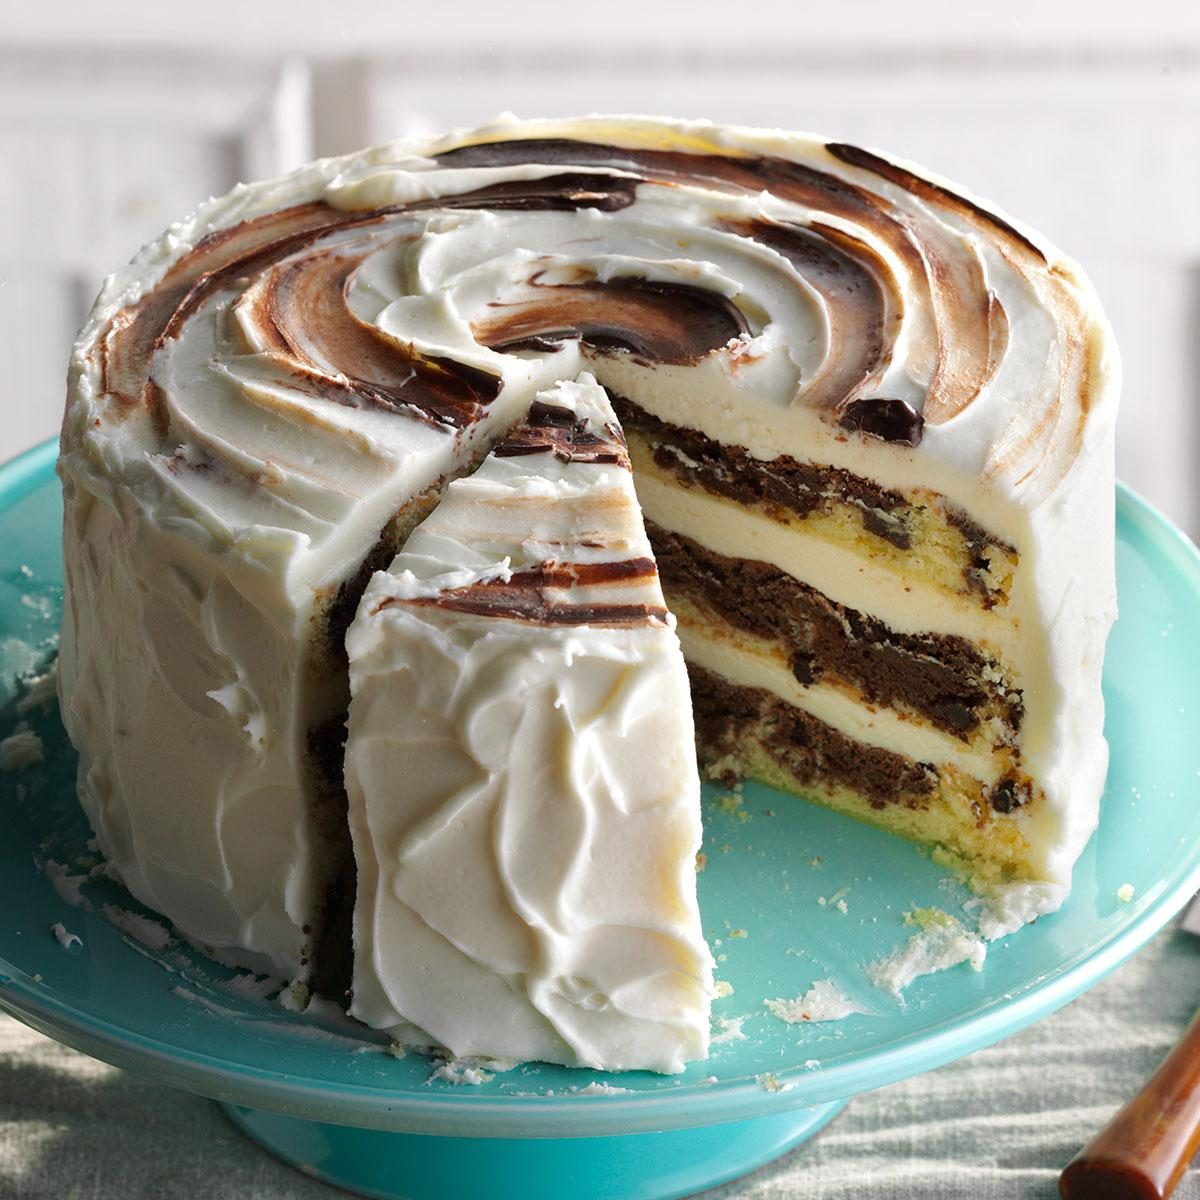 The Most Beautiful Cakes Weve Ever Made Taste Of Home